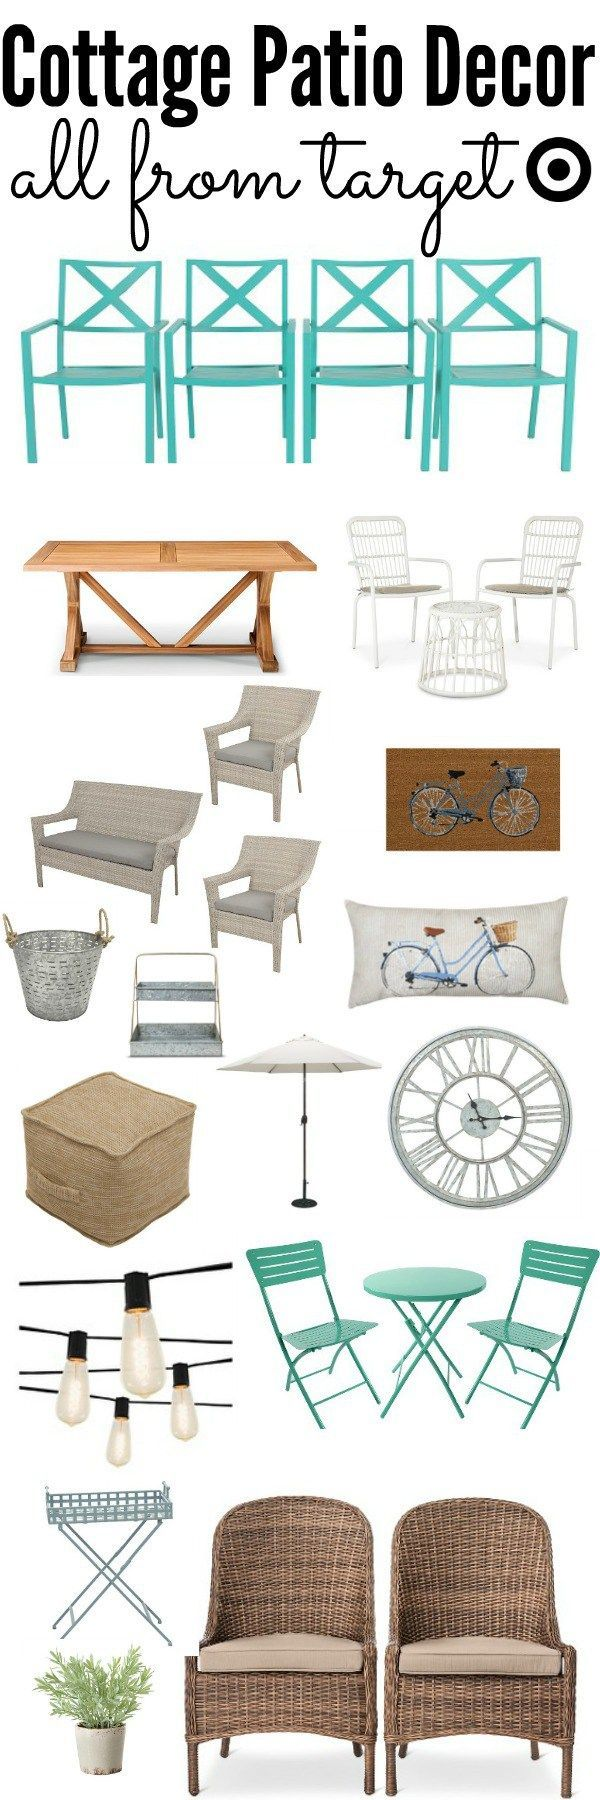 cottage style patio decor - cozy rustic style patio decor all from Target  at an affordable price. A great pin for spring & summer patio decor!! - Cottage Style Patio Decor Home Decor And DIY Patio, Cottage